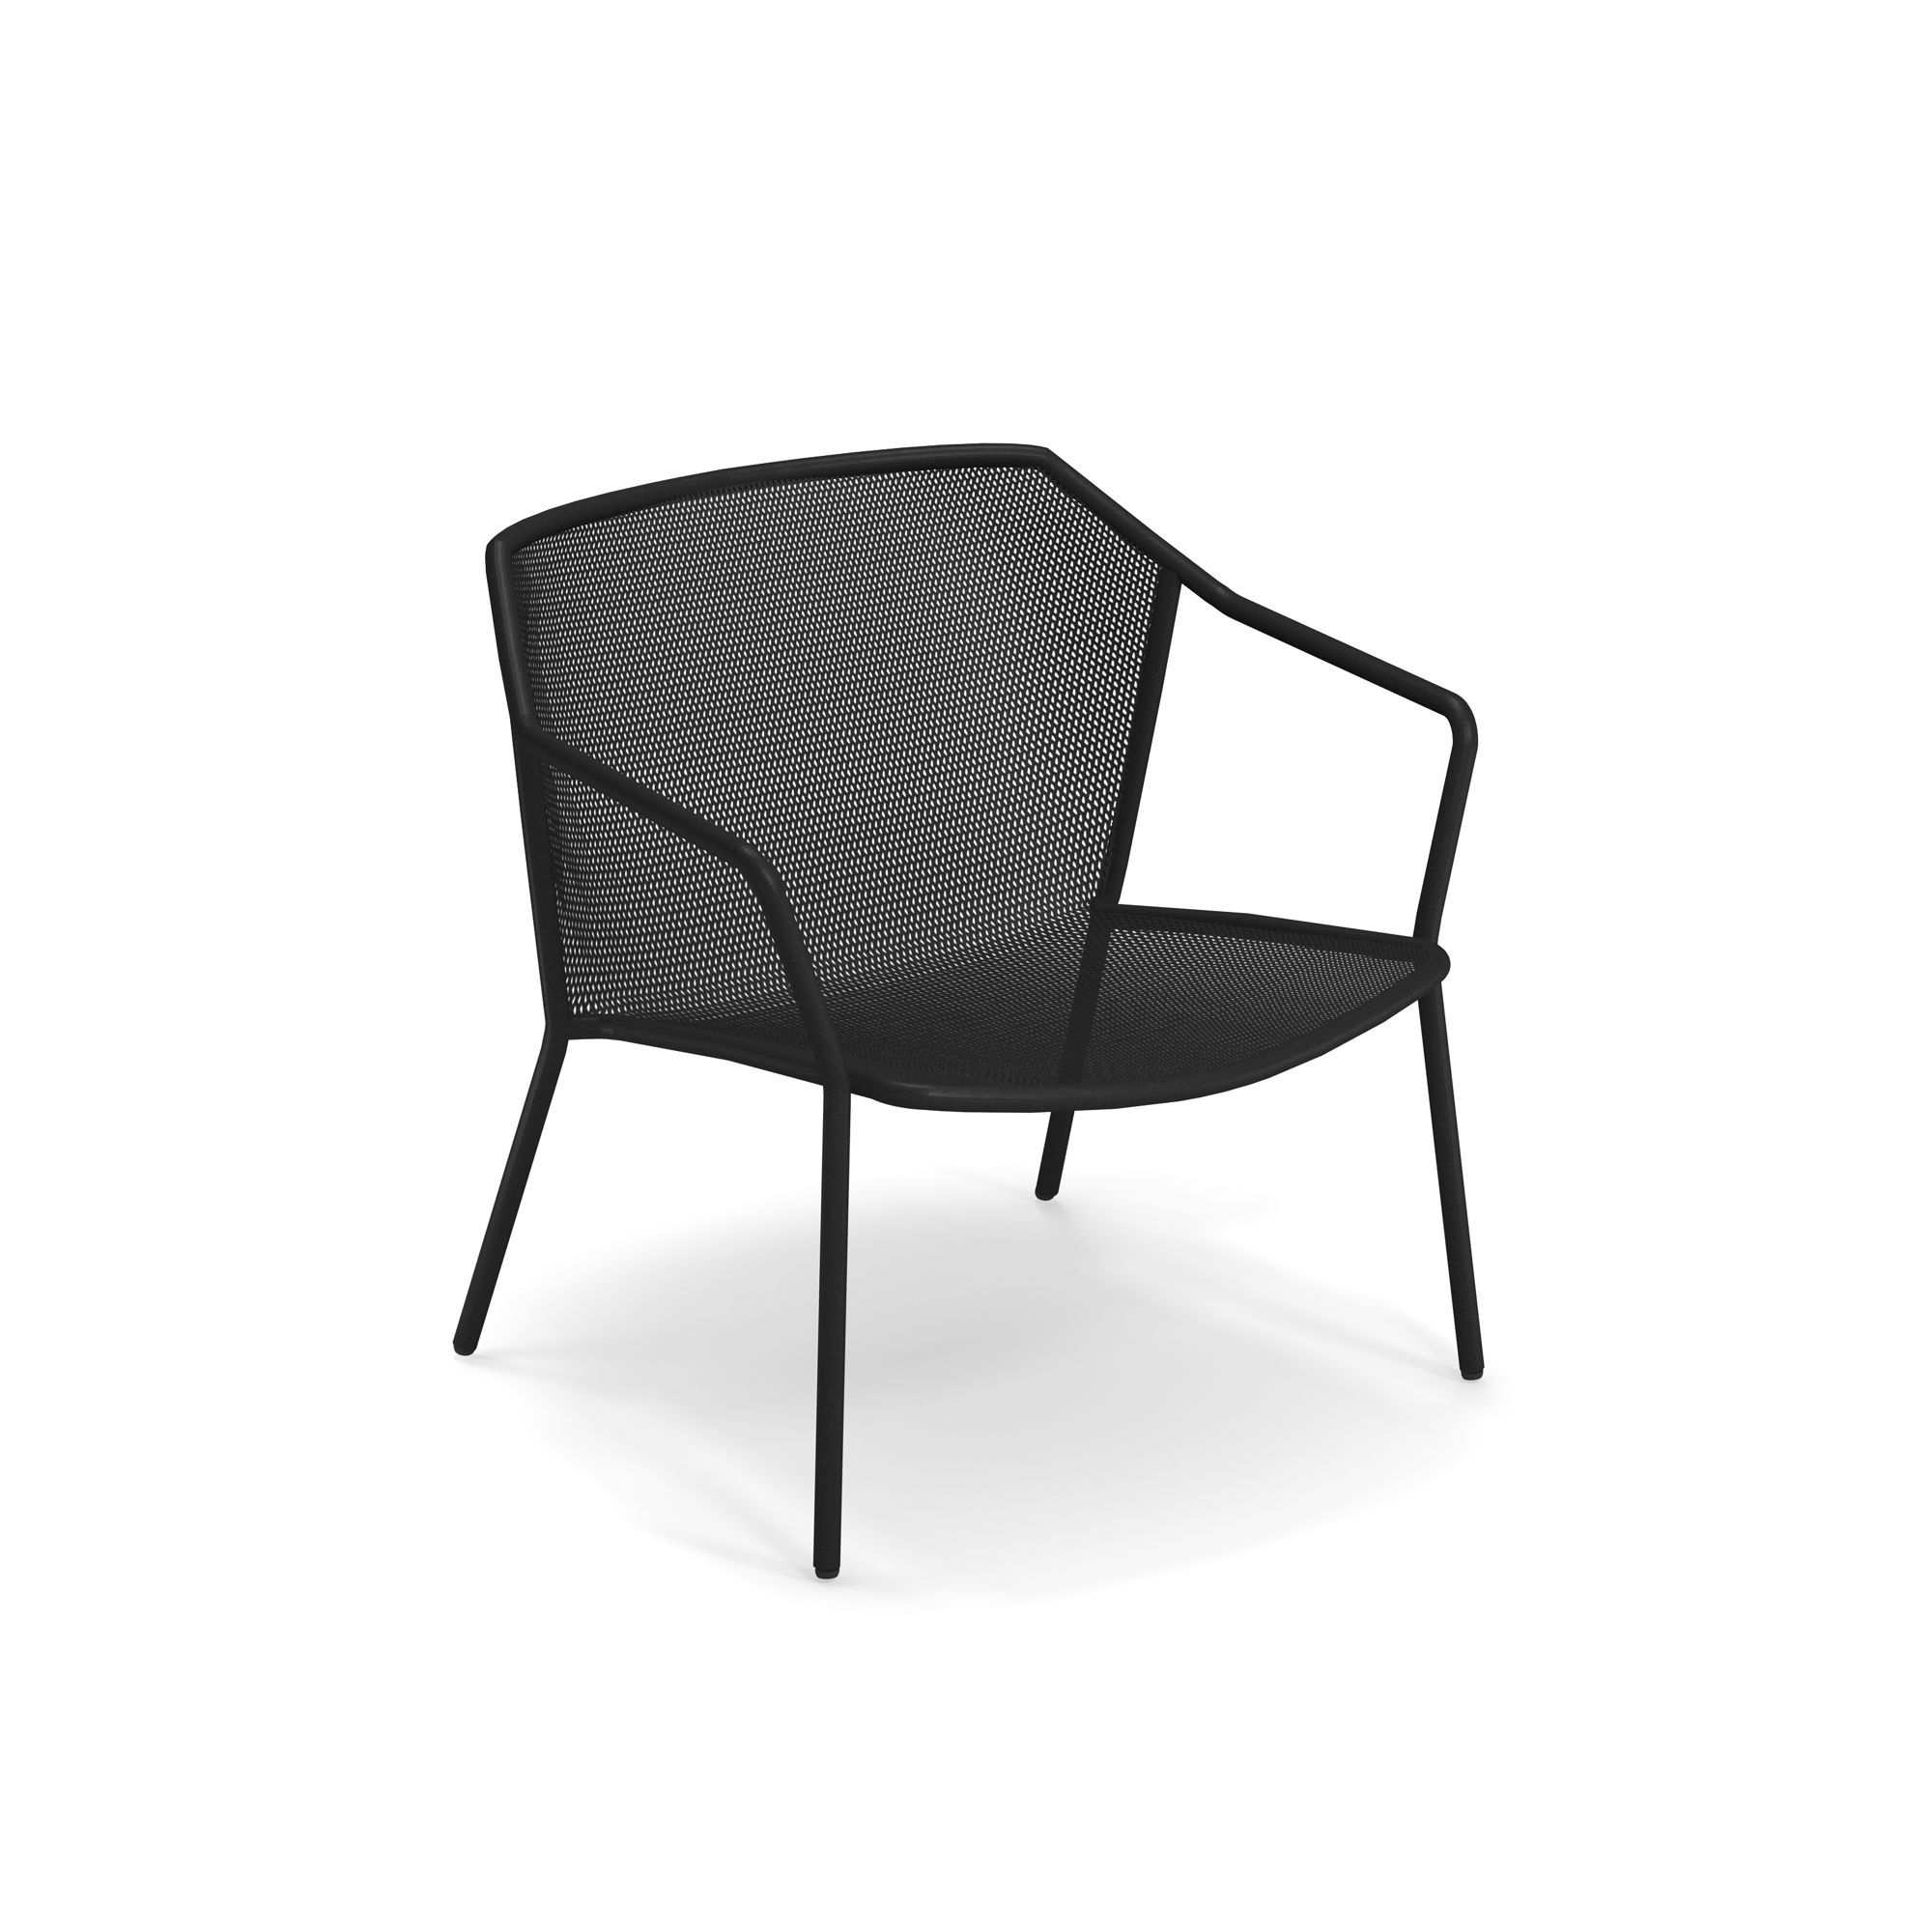 emuamericas, llc 524-24 chair, lounge, outdoor